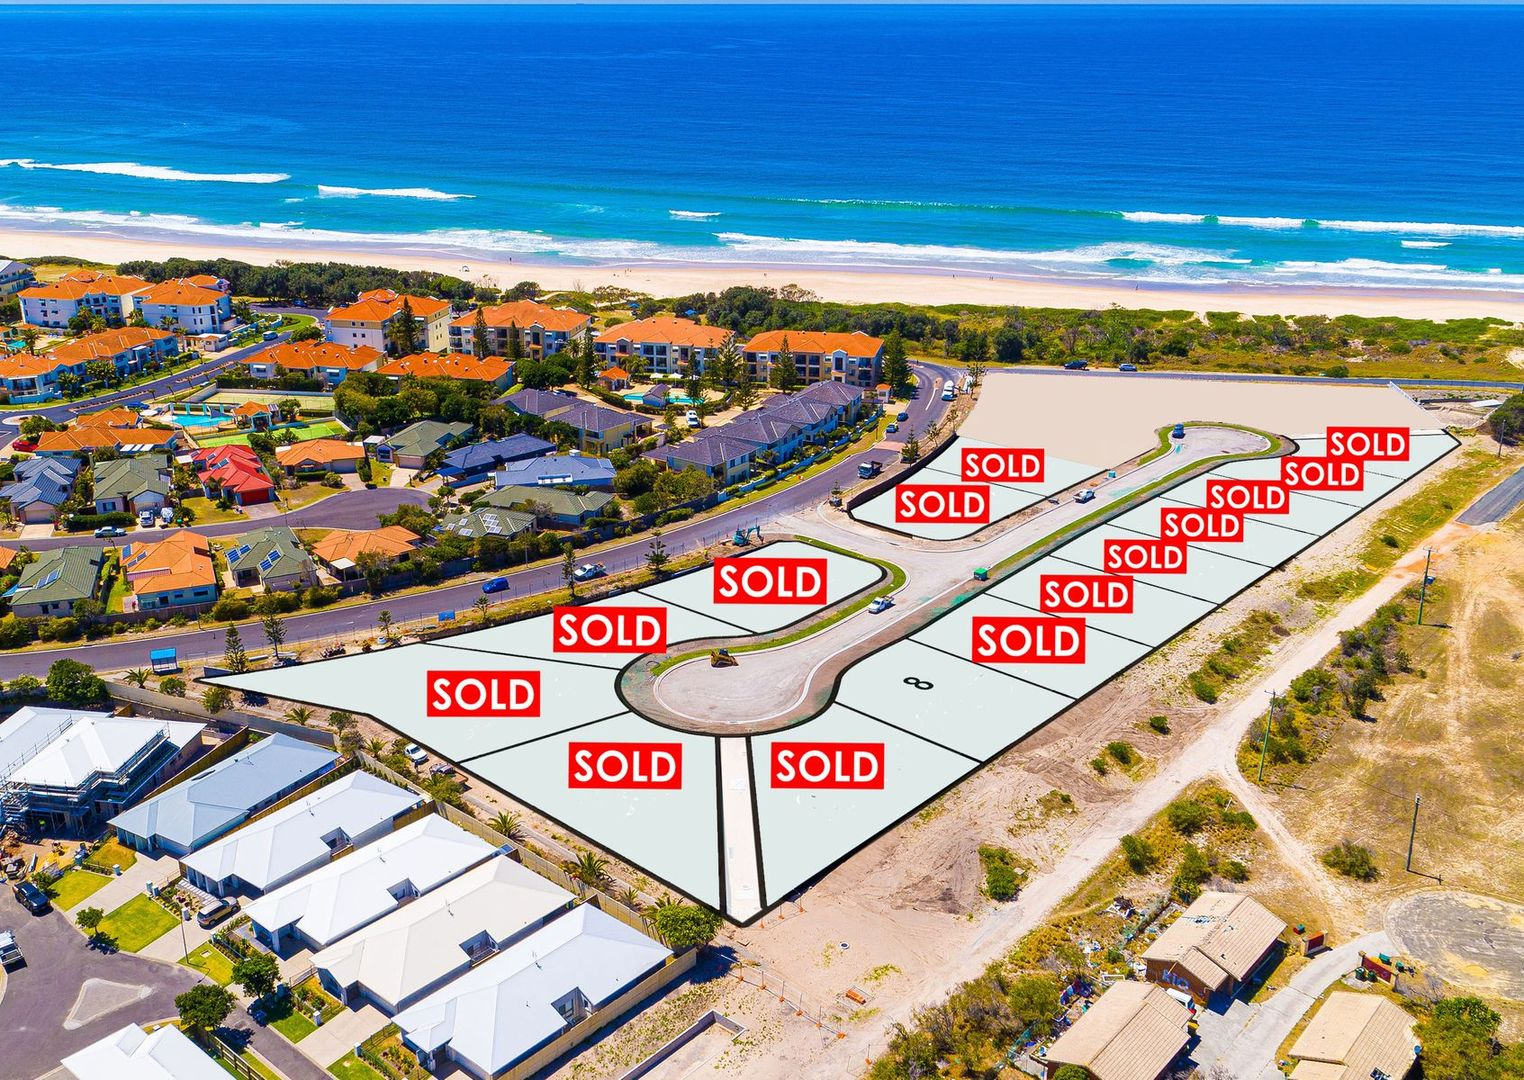 Lot 8 The Dunes Esta River Street, Yamba NSW 2464, Image 0